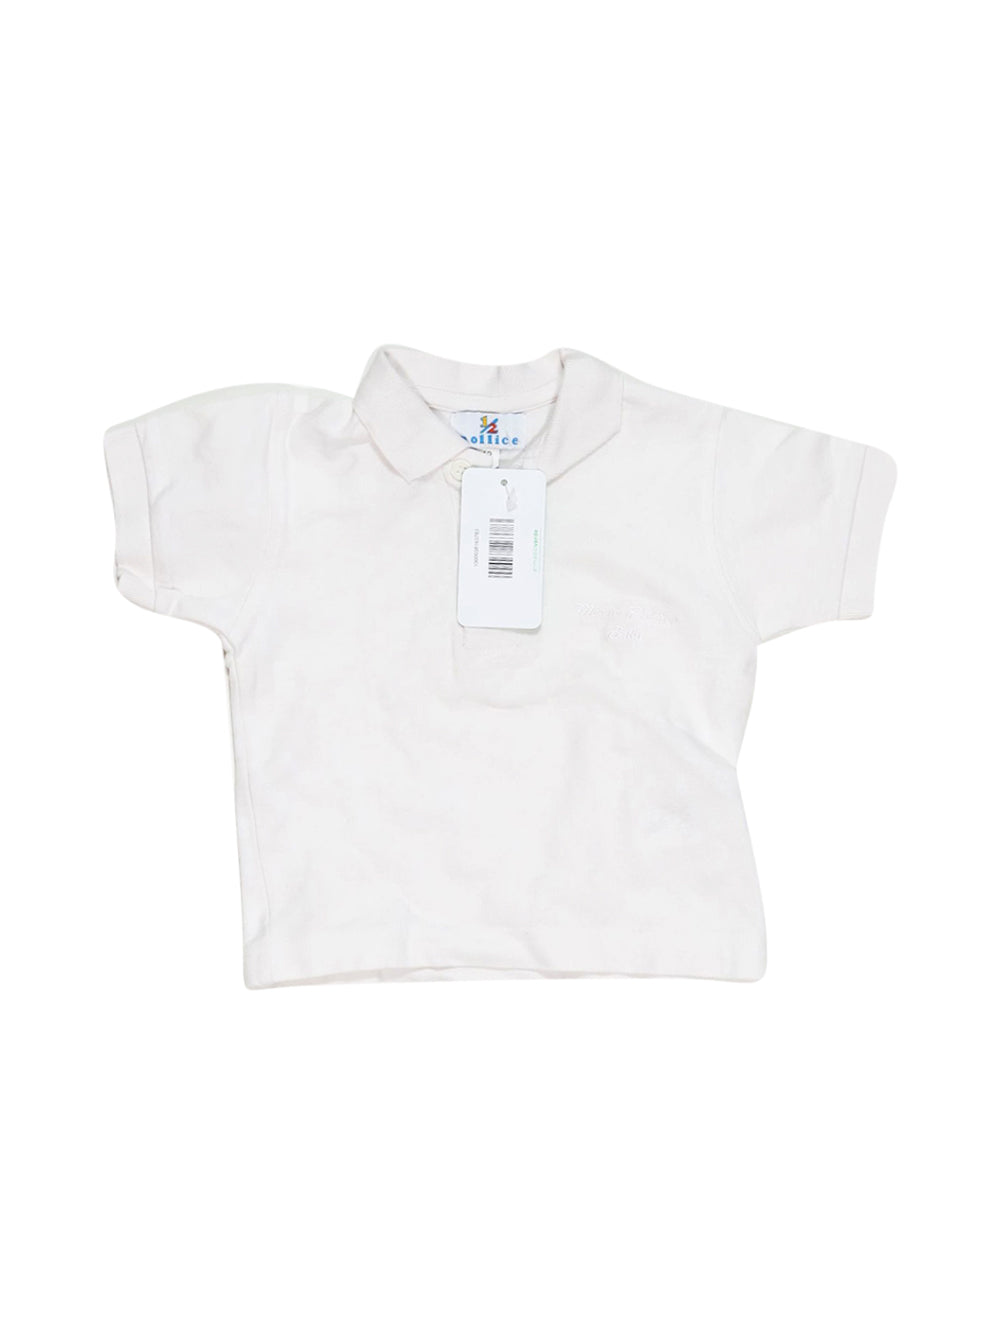 Front photo of Preloved 1/2 Pollice White Girl's polo - size 9-12 mths